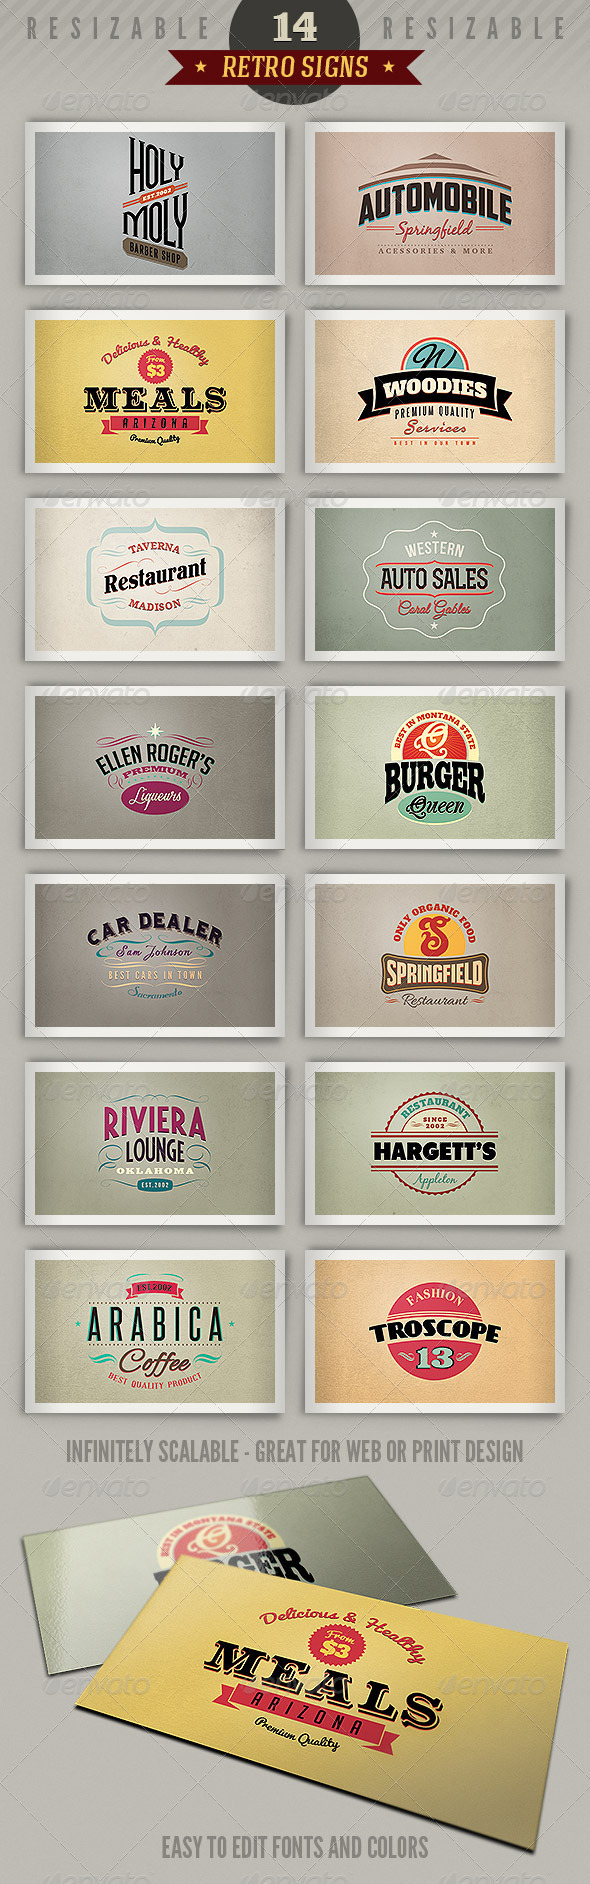 GraphicRiver 14 Retro Signs or Banners Vol.3 4000988